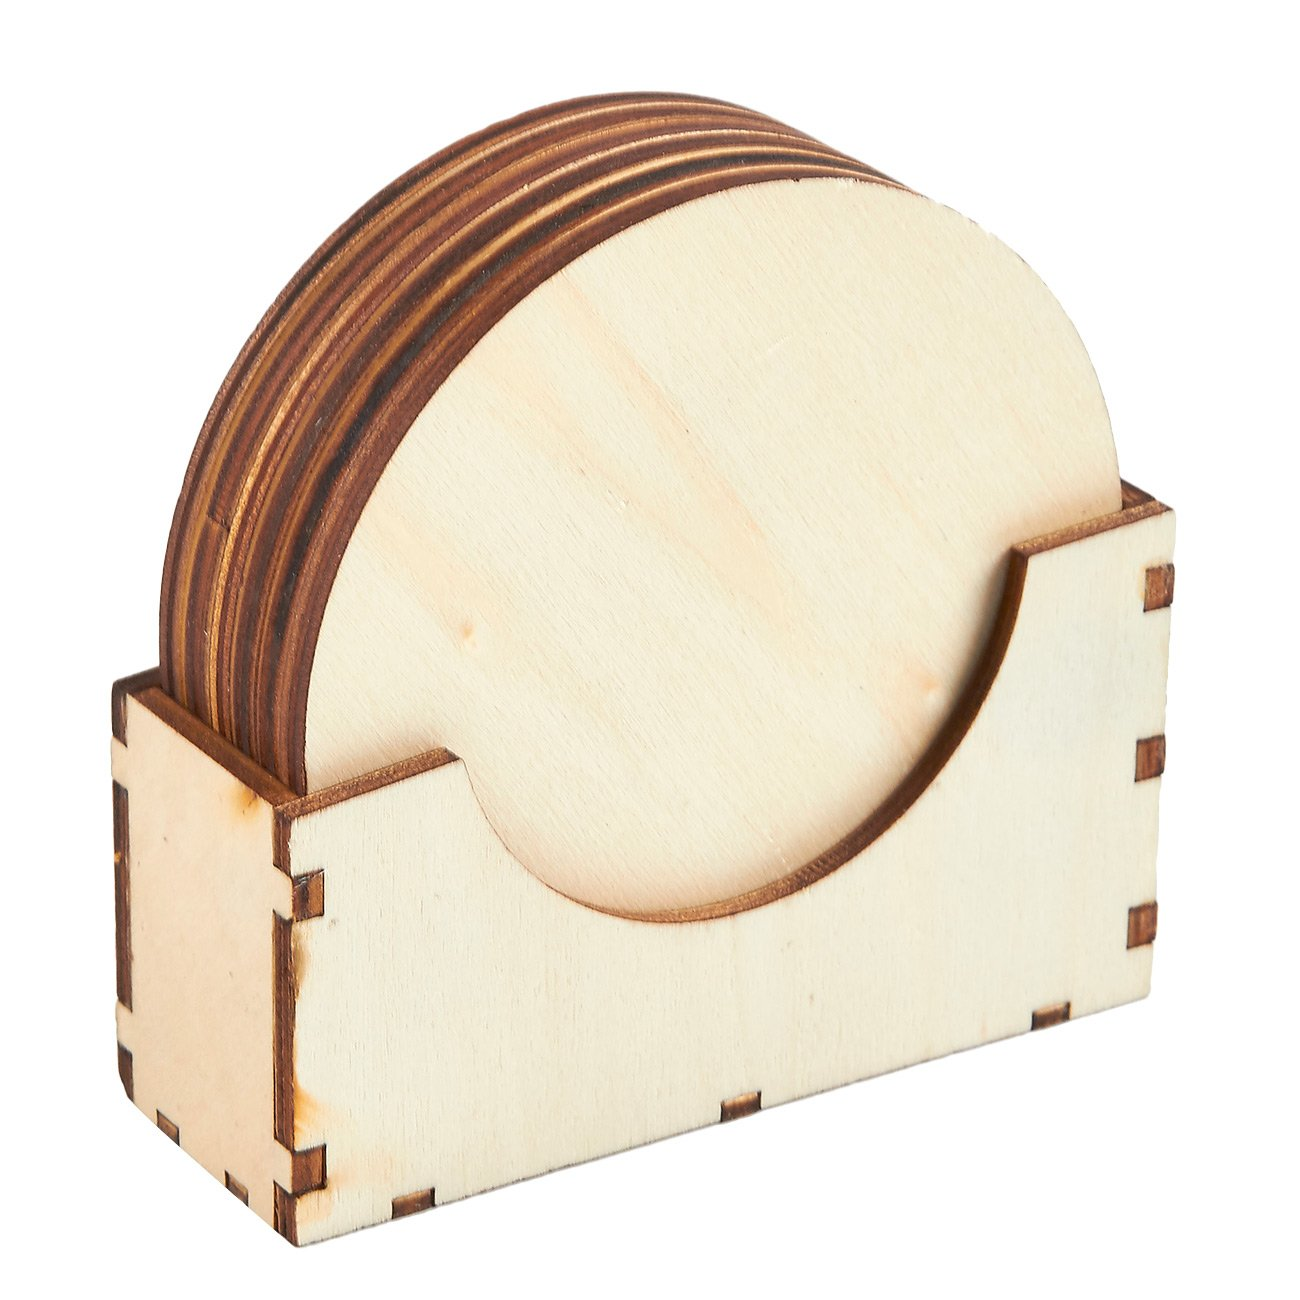 Wood Coasters - 6-Pack Round Wooden Drink Coasters with Holder, Unfinished Wood Circle Cup Coasters for Home Kitchen, Office Desk, 3.875 Inches Diameter by Juvale (Image #4)